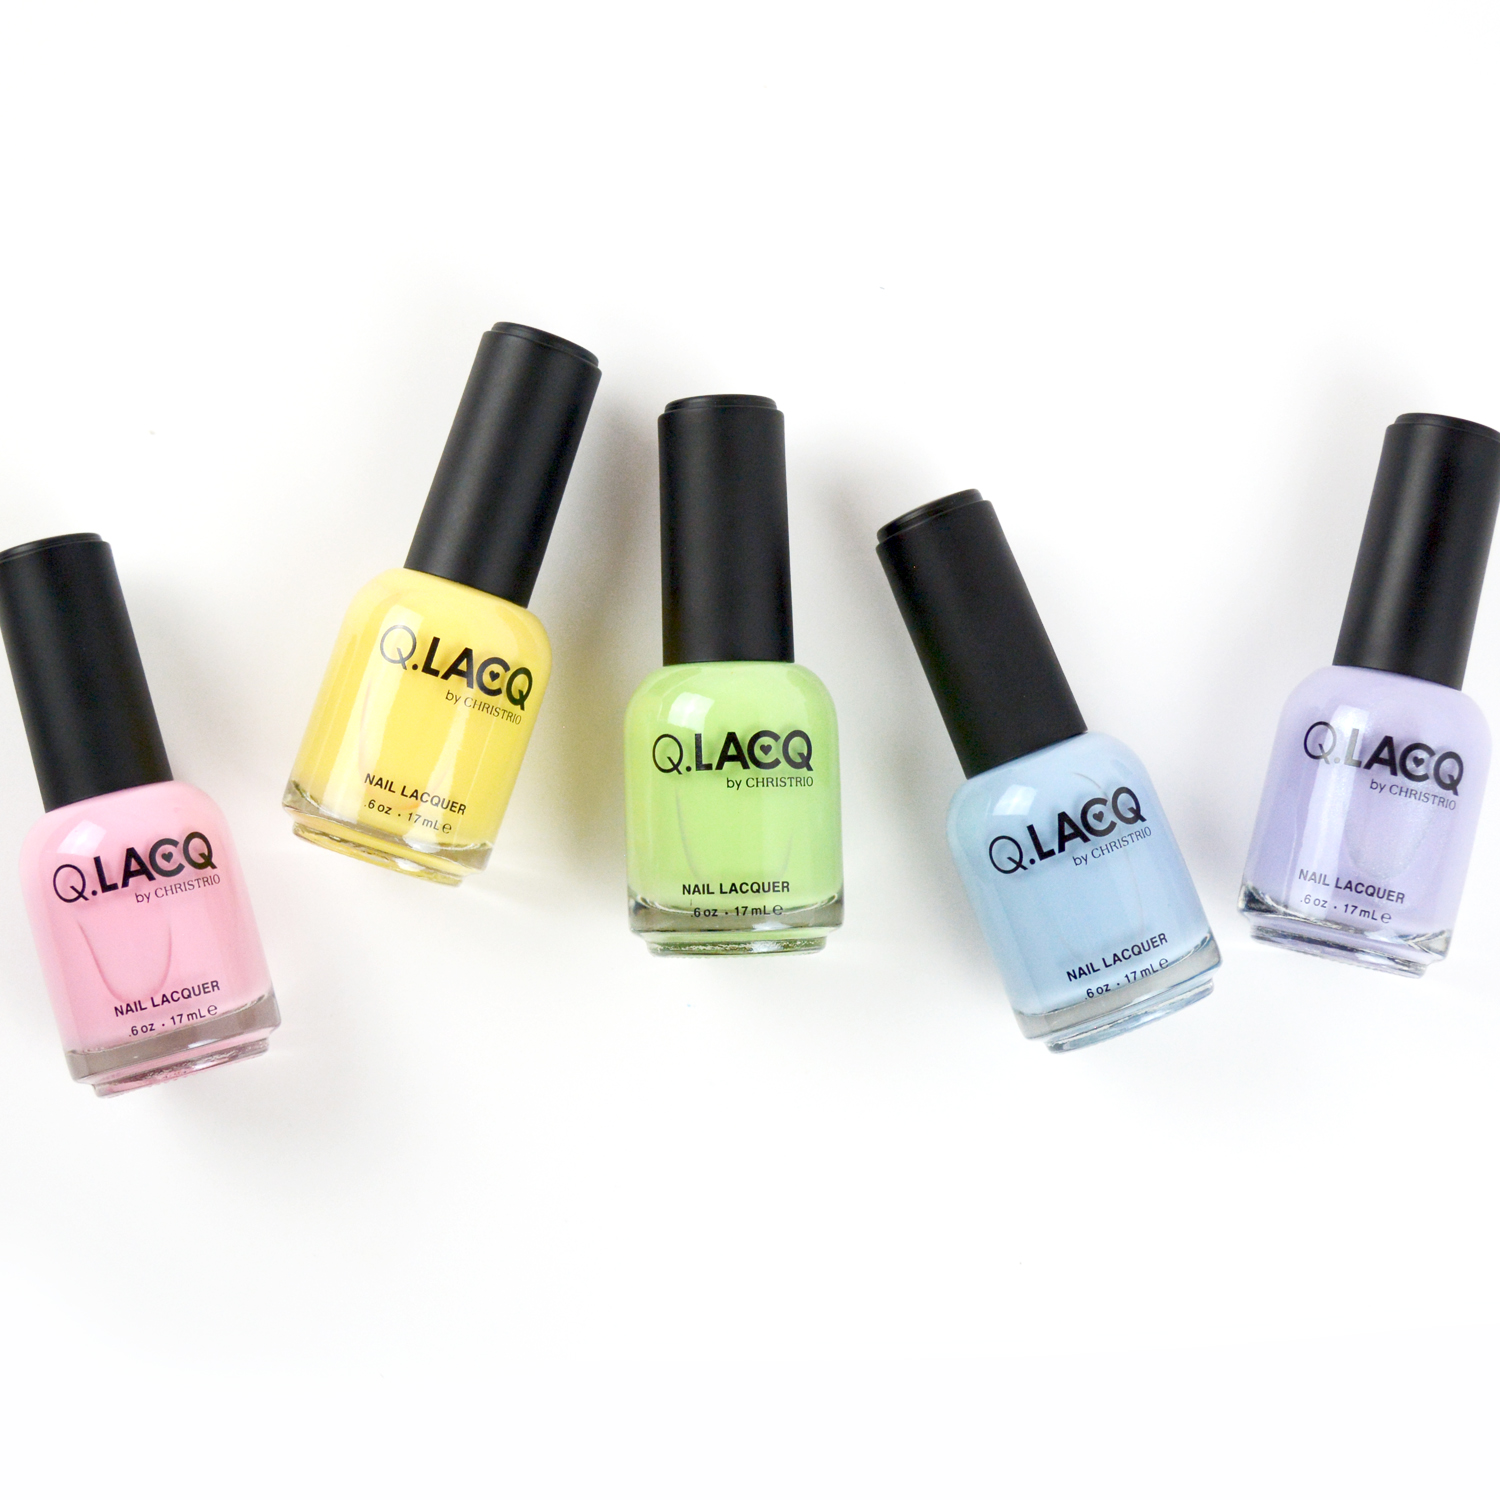 G.LACQ Releases Essential Pastel Shades For Spring